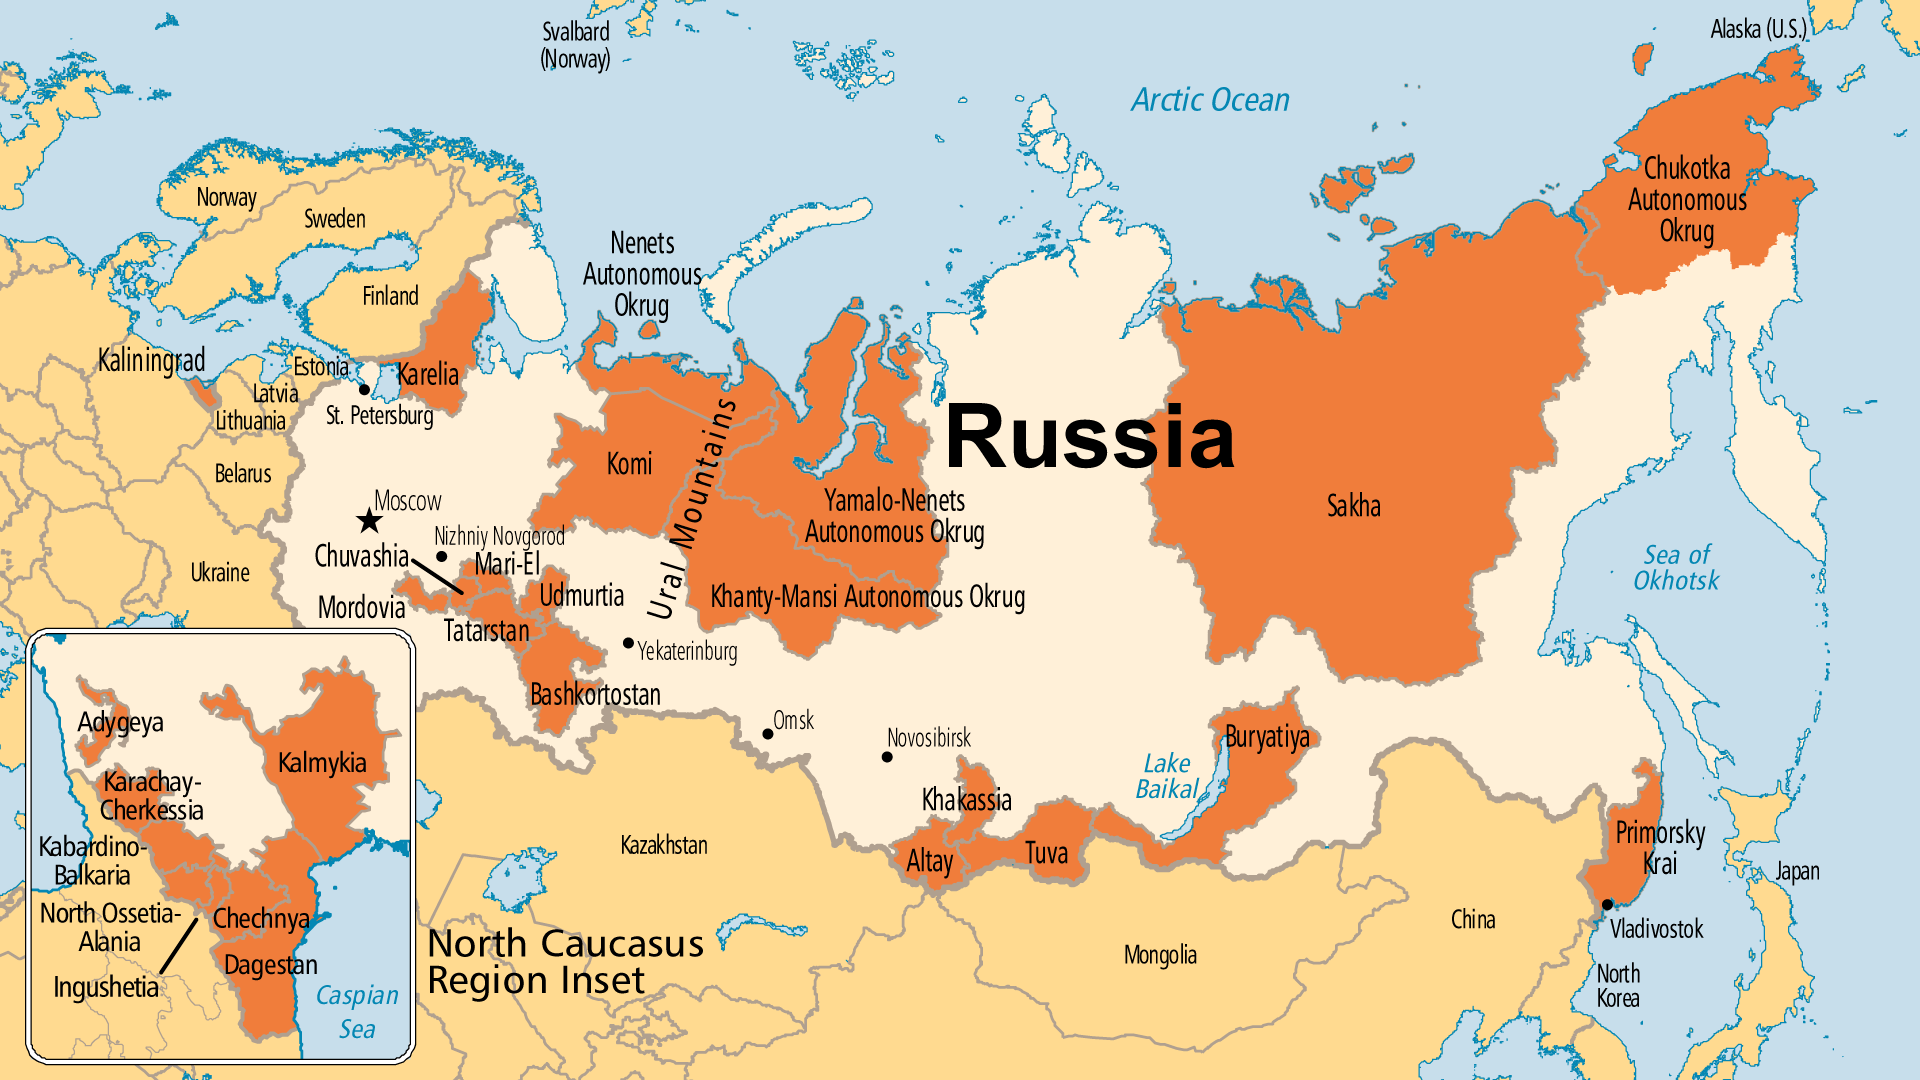 Detailed Map for Russia